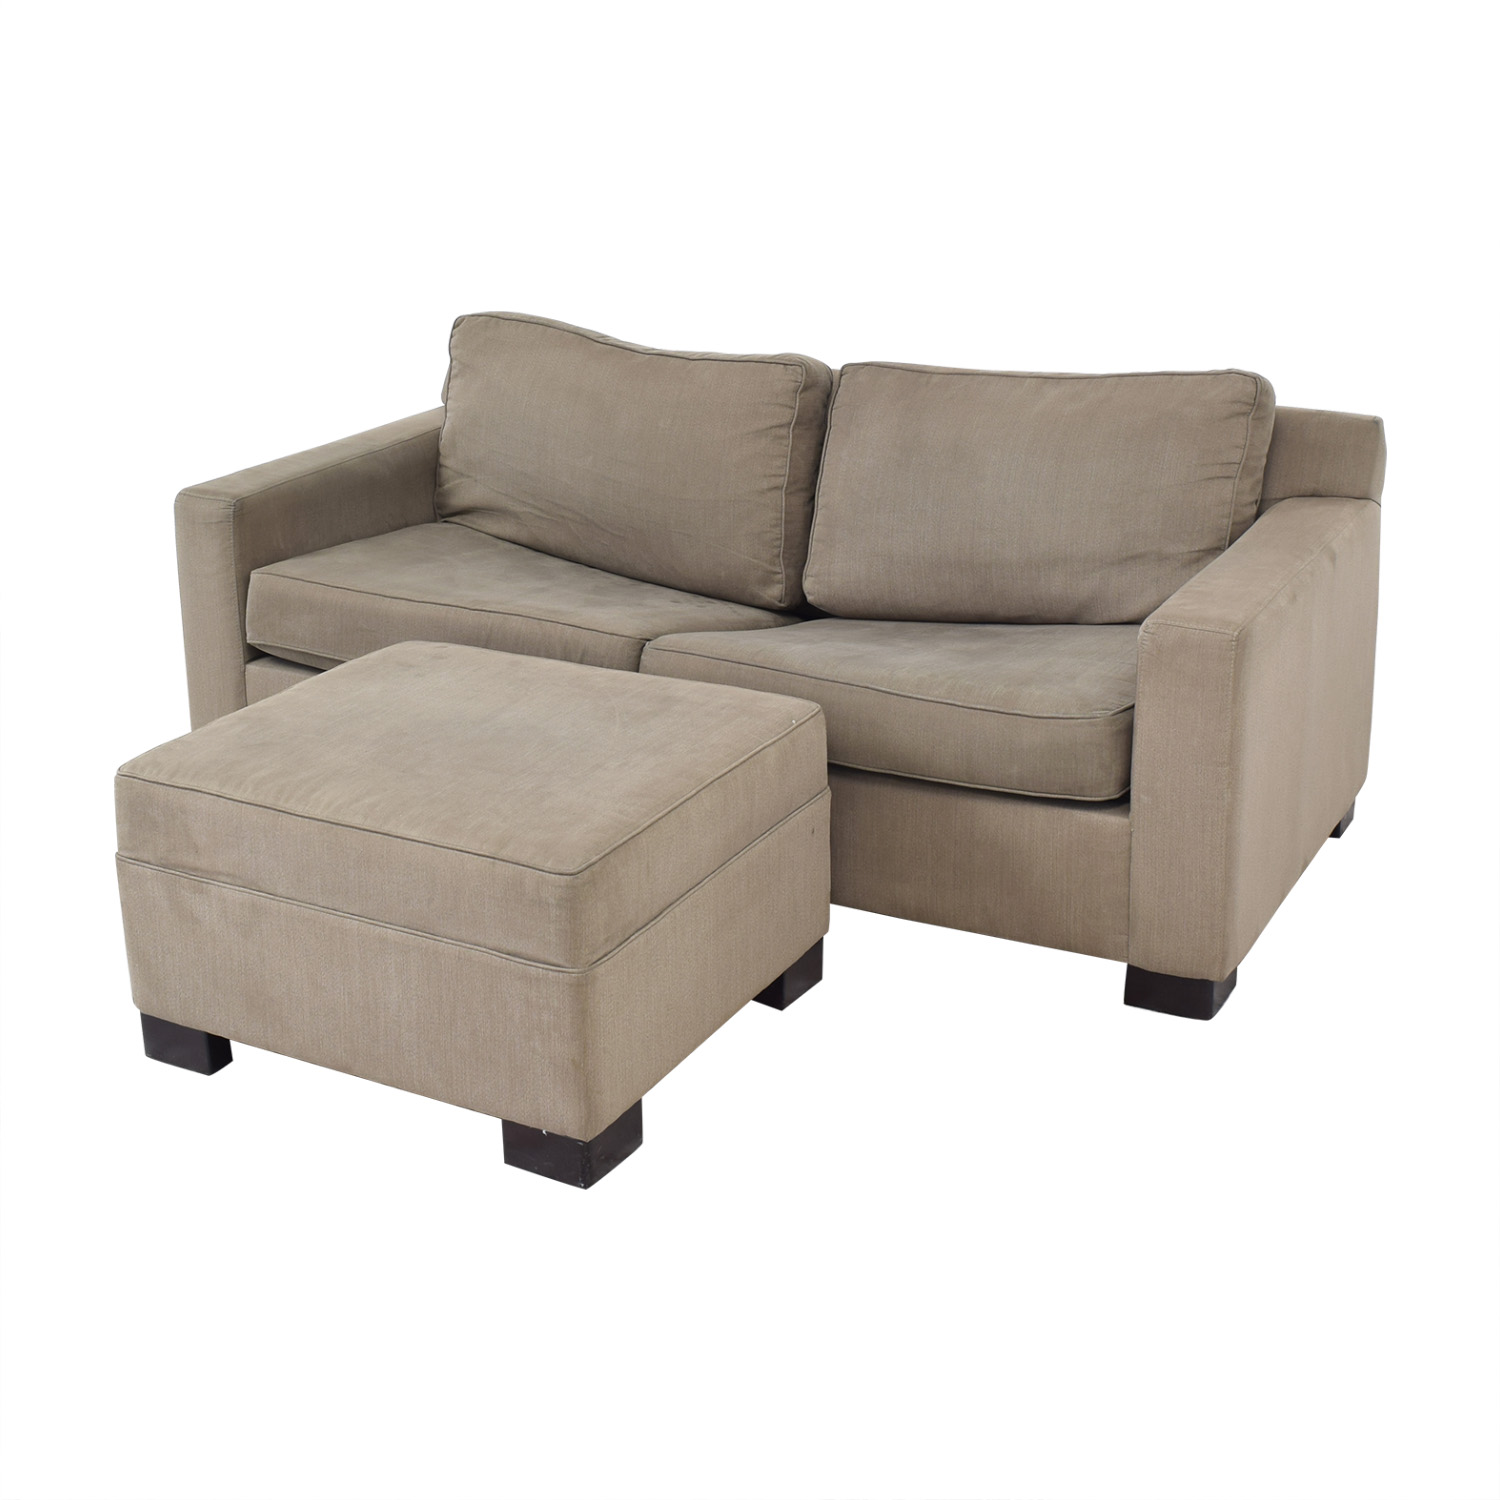 Urban Barn Urban Barn Apartment Sleeper Sofa & Ottoman ct